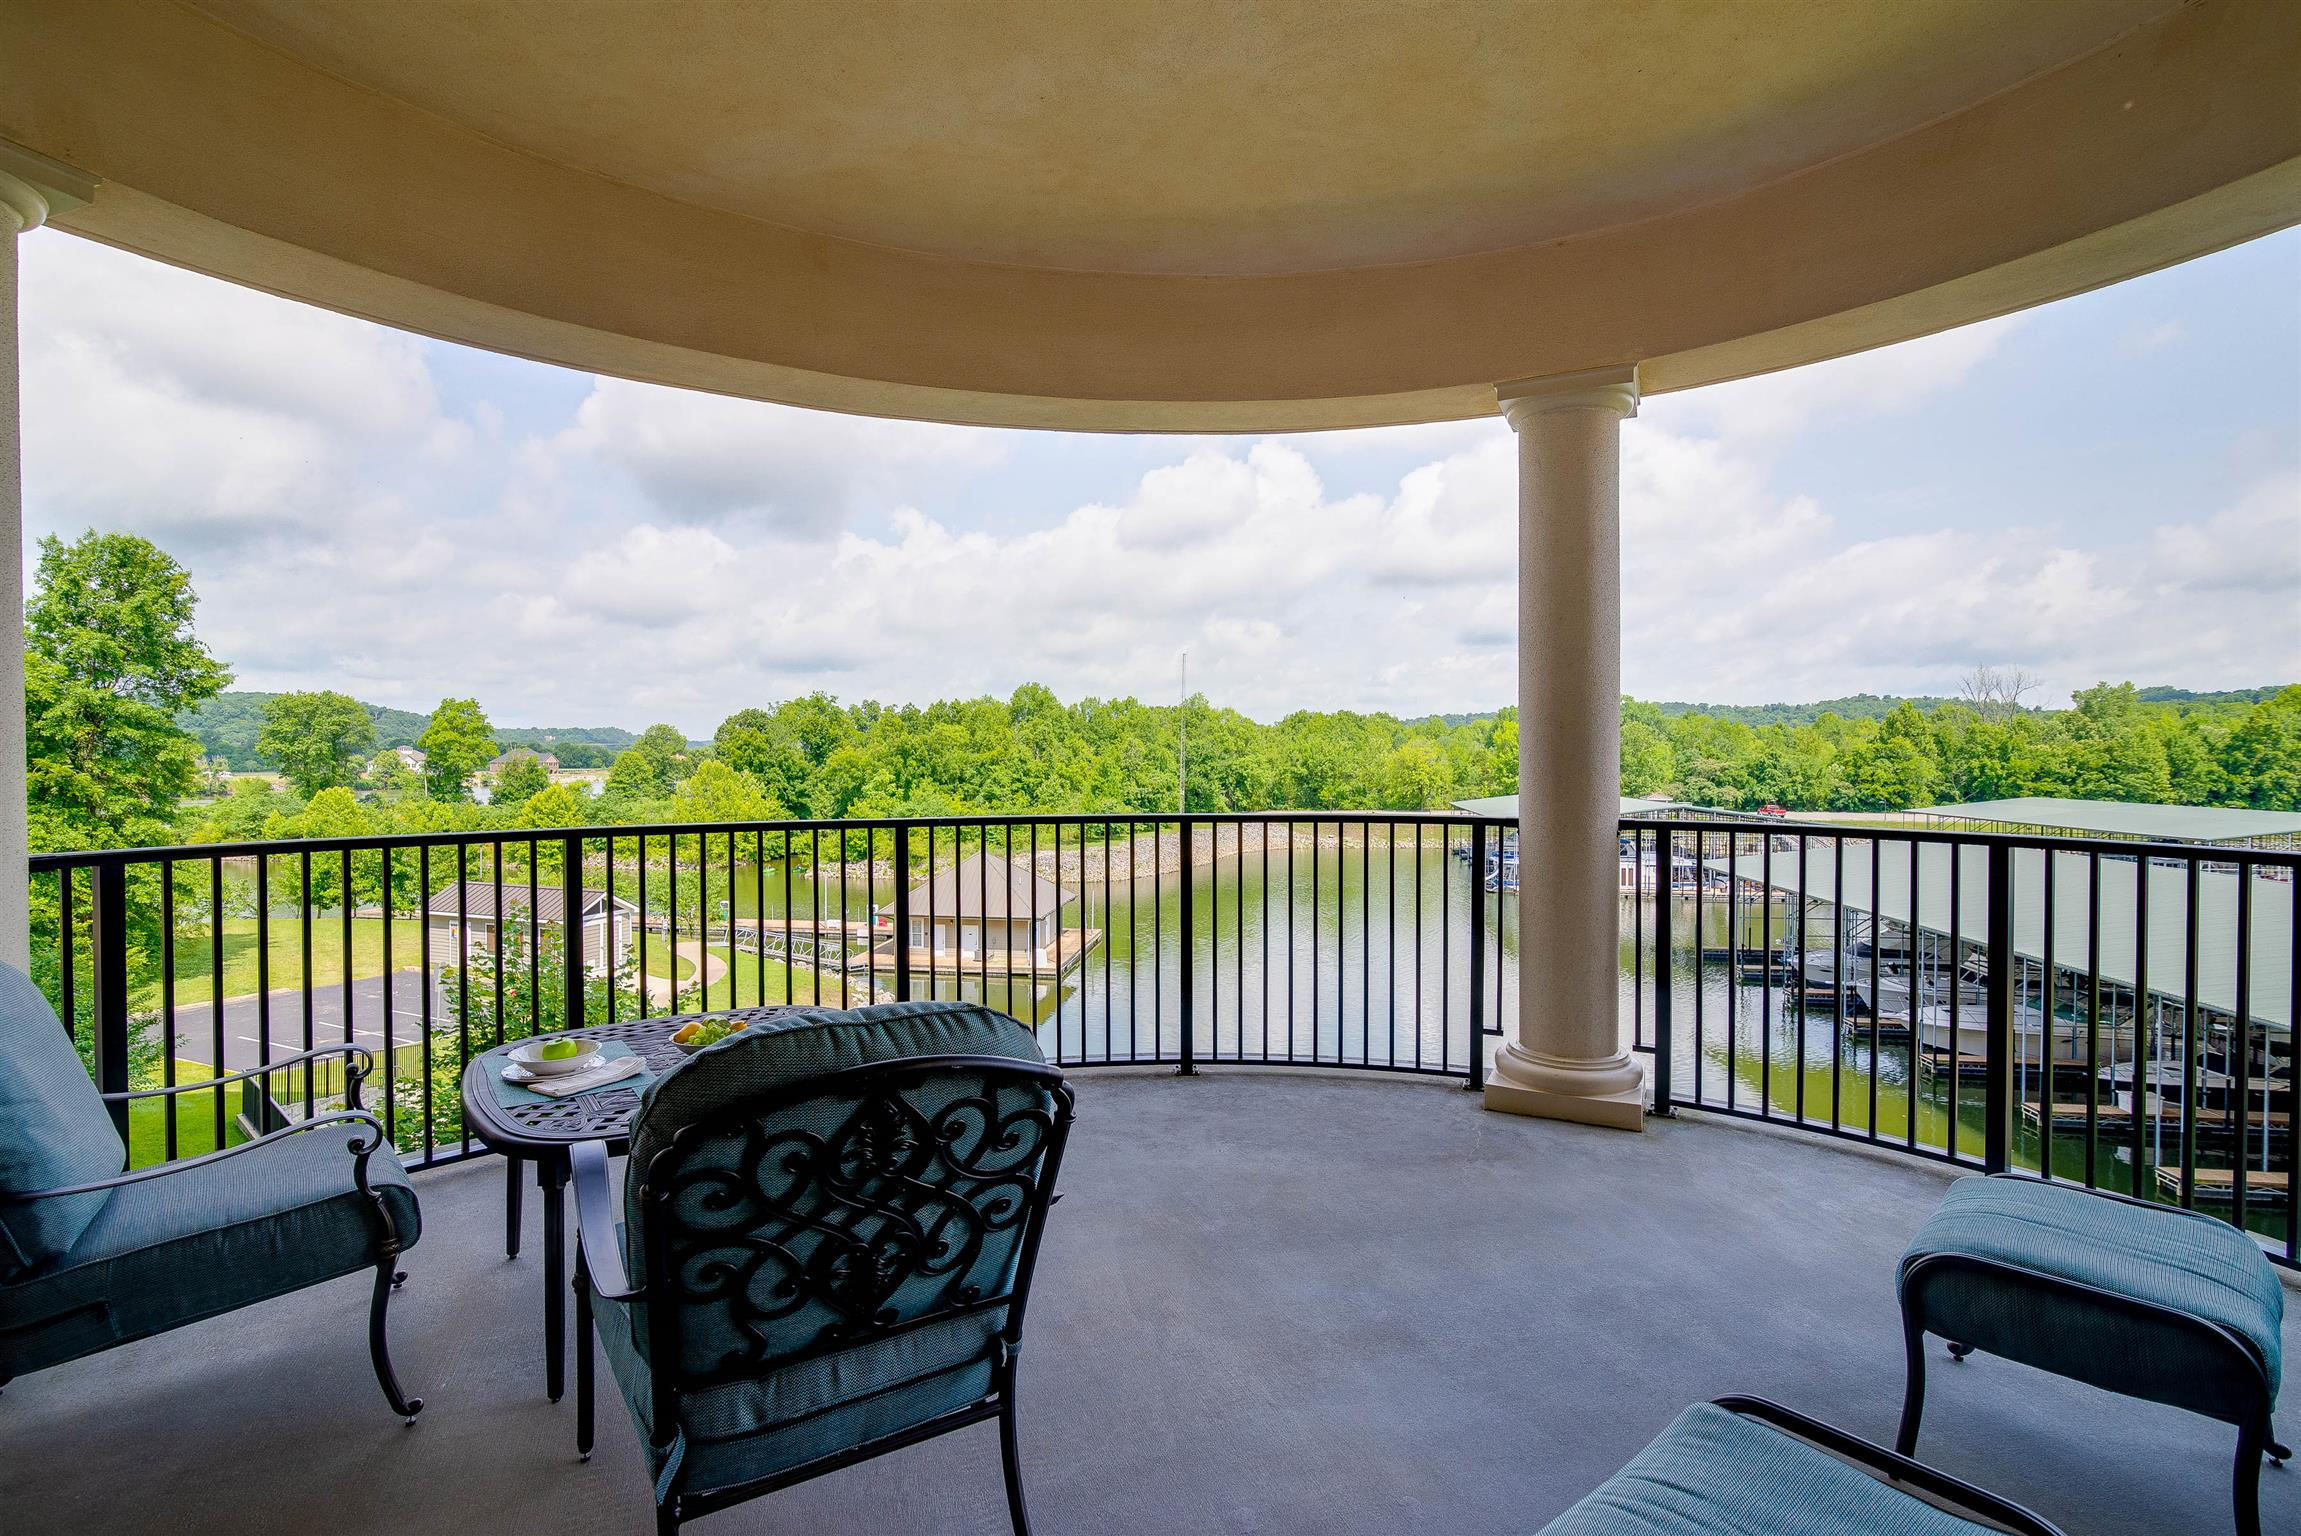 400 Warioto Way Apt 312, Ashland City, TN 37015 - Ashland City, TN real estate listing